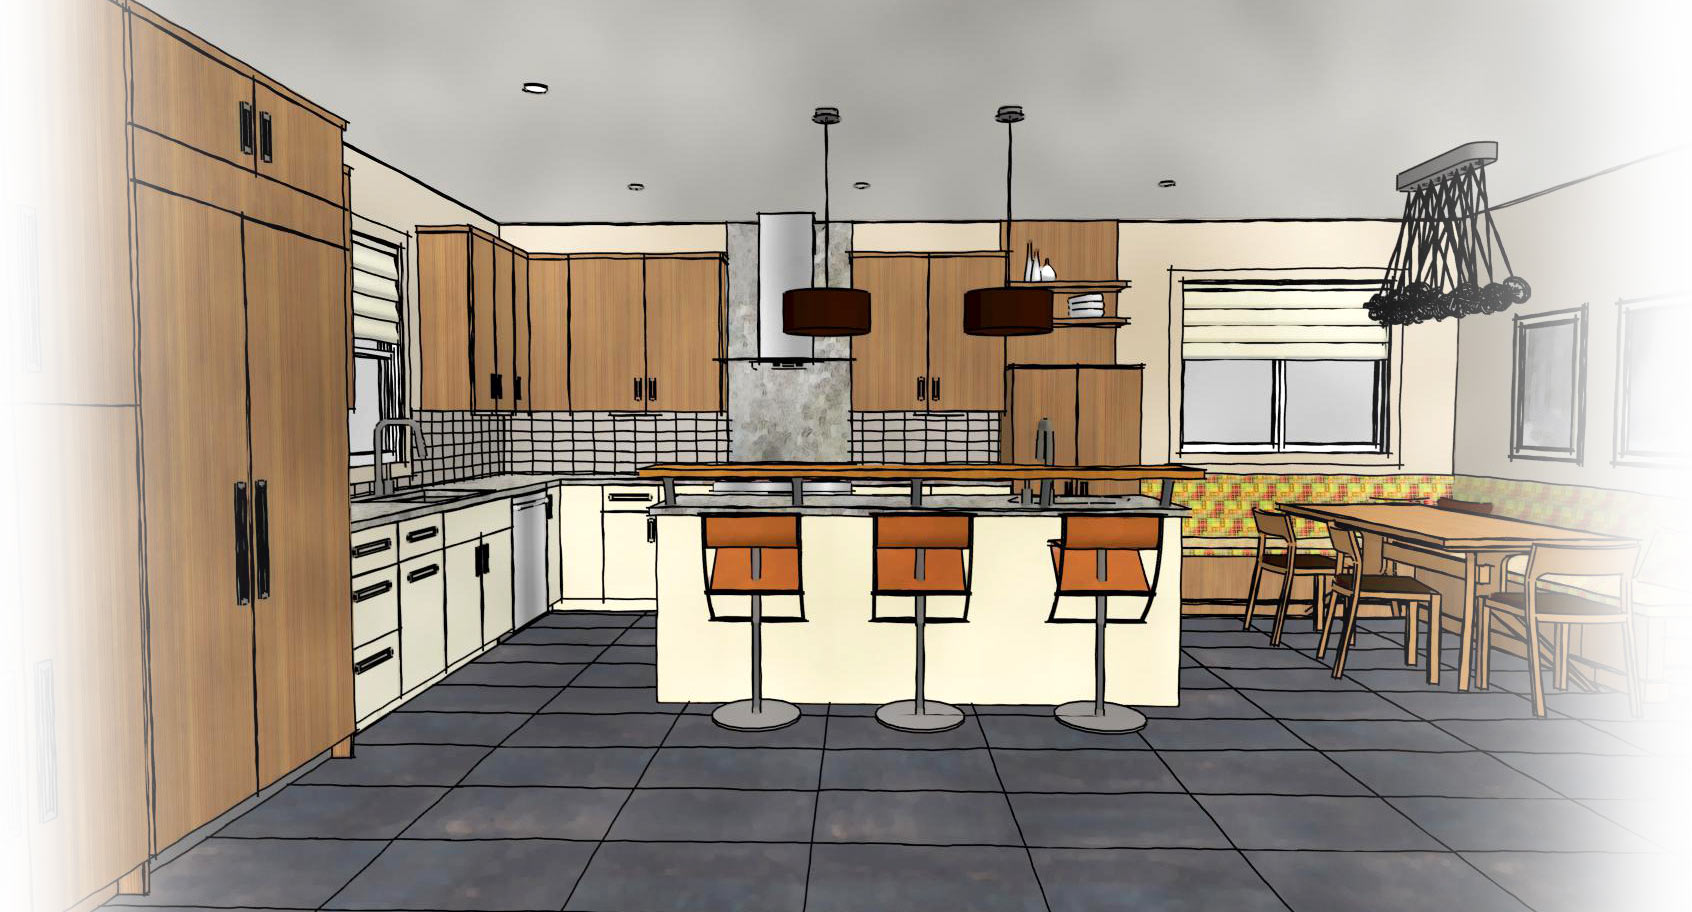 kitchen planner app the best way to clean cabinets chief architect interior software for professional ...